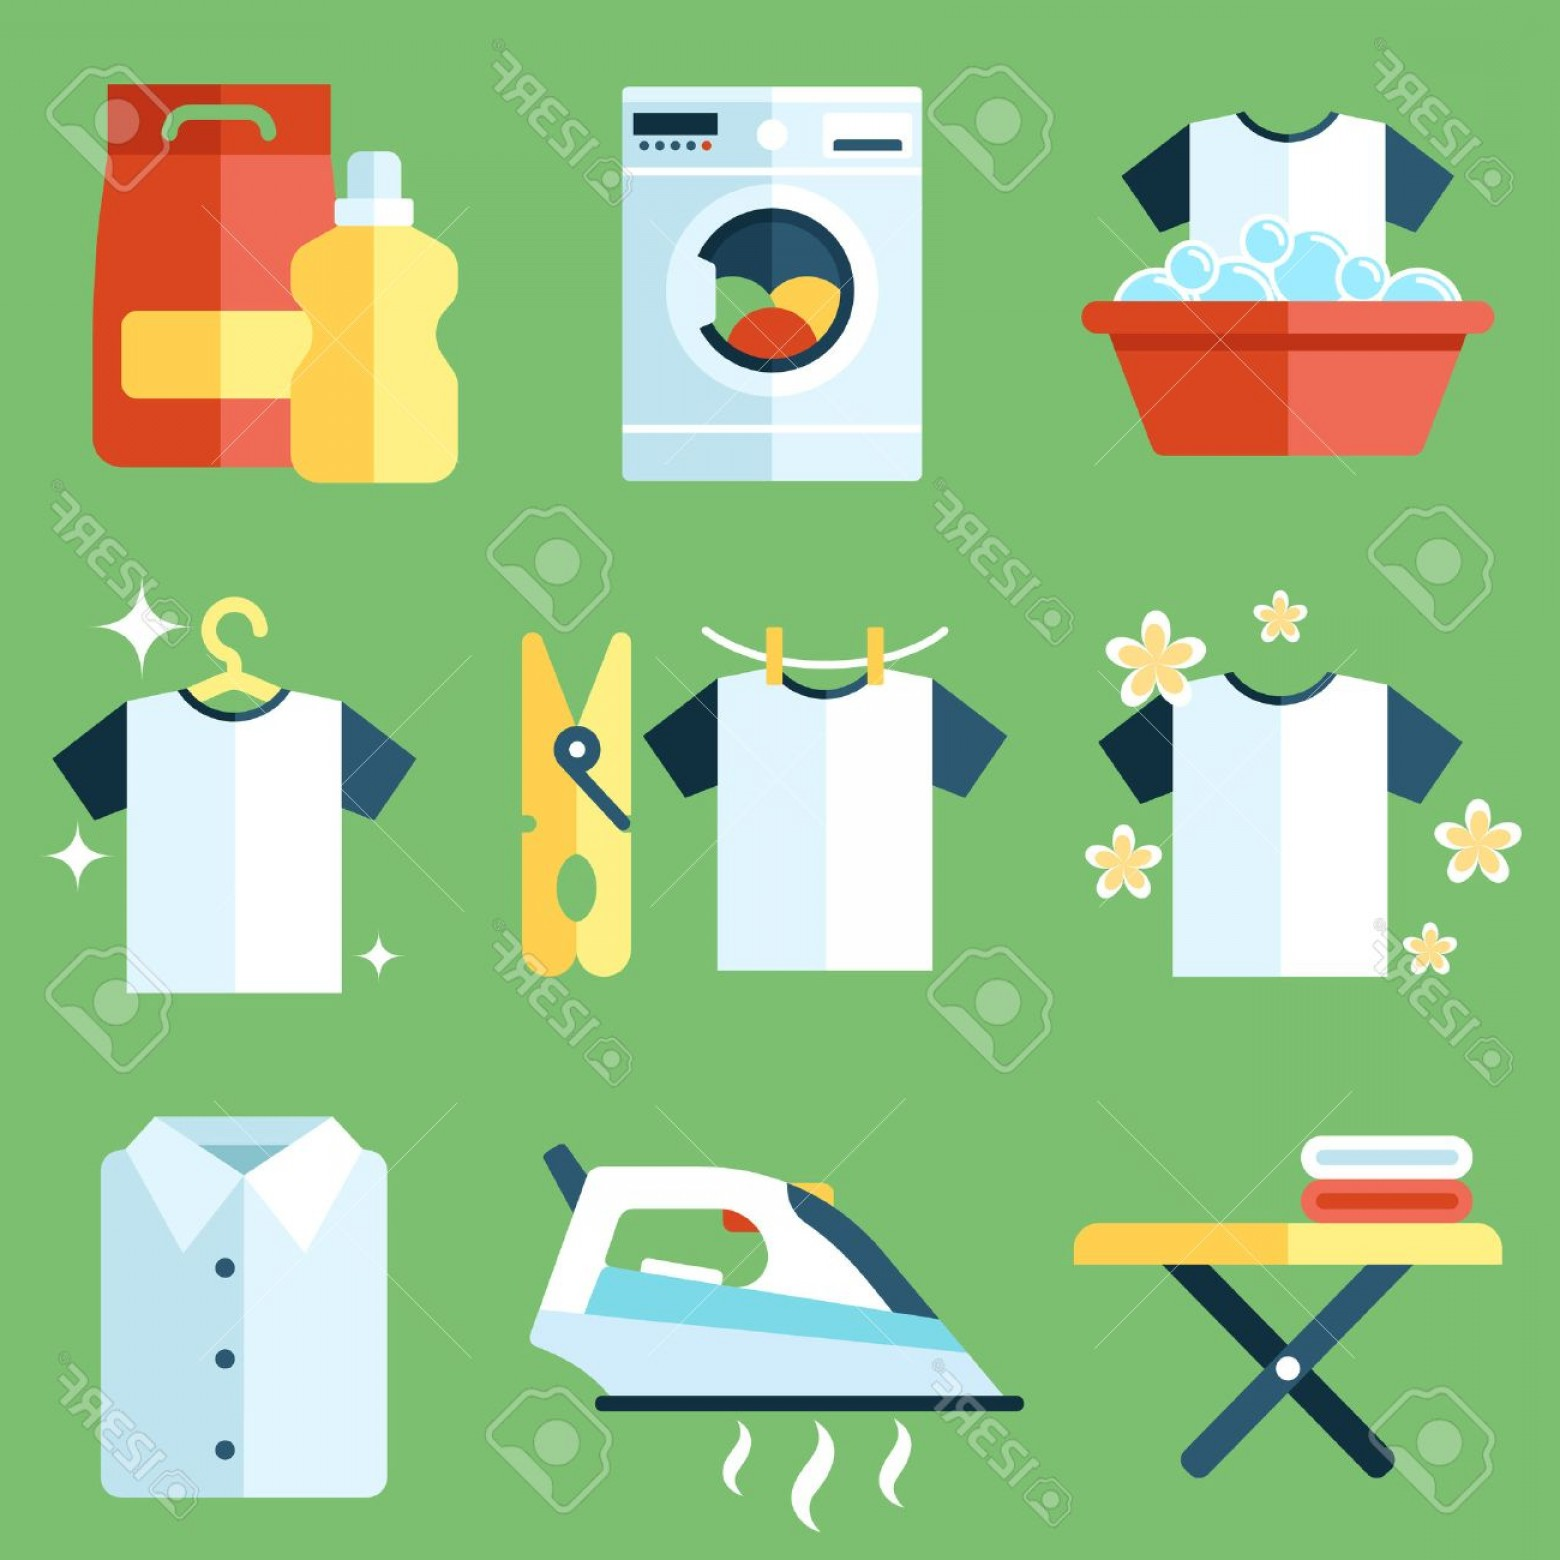 Clothes For Washing Vector: Photostock Vector Vector Set Of Laundry Clothes Washing And Ironing Icons Flat Style